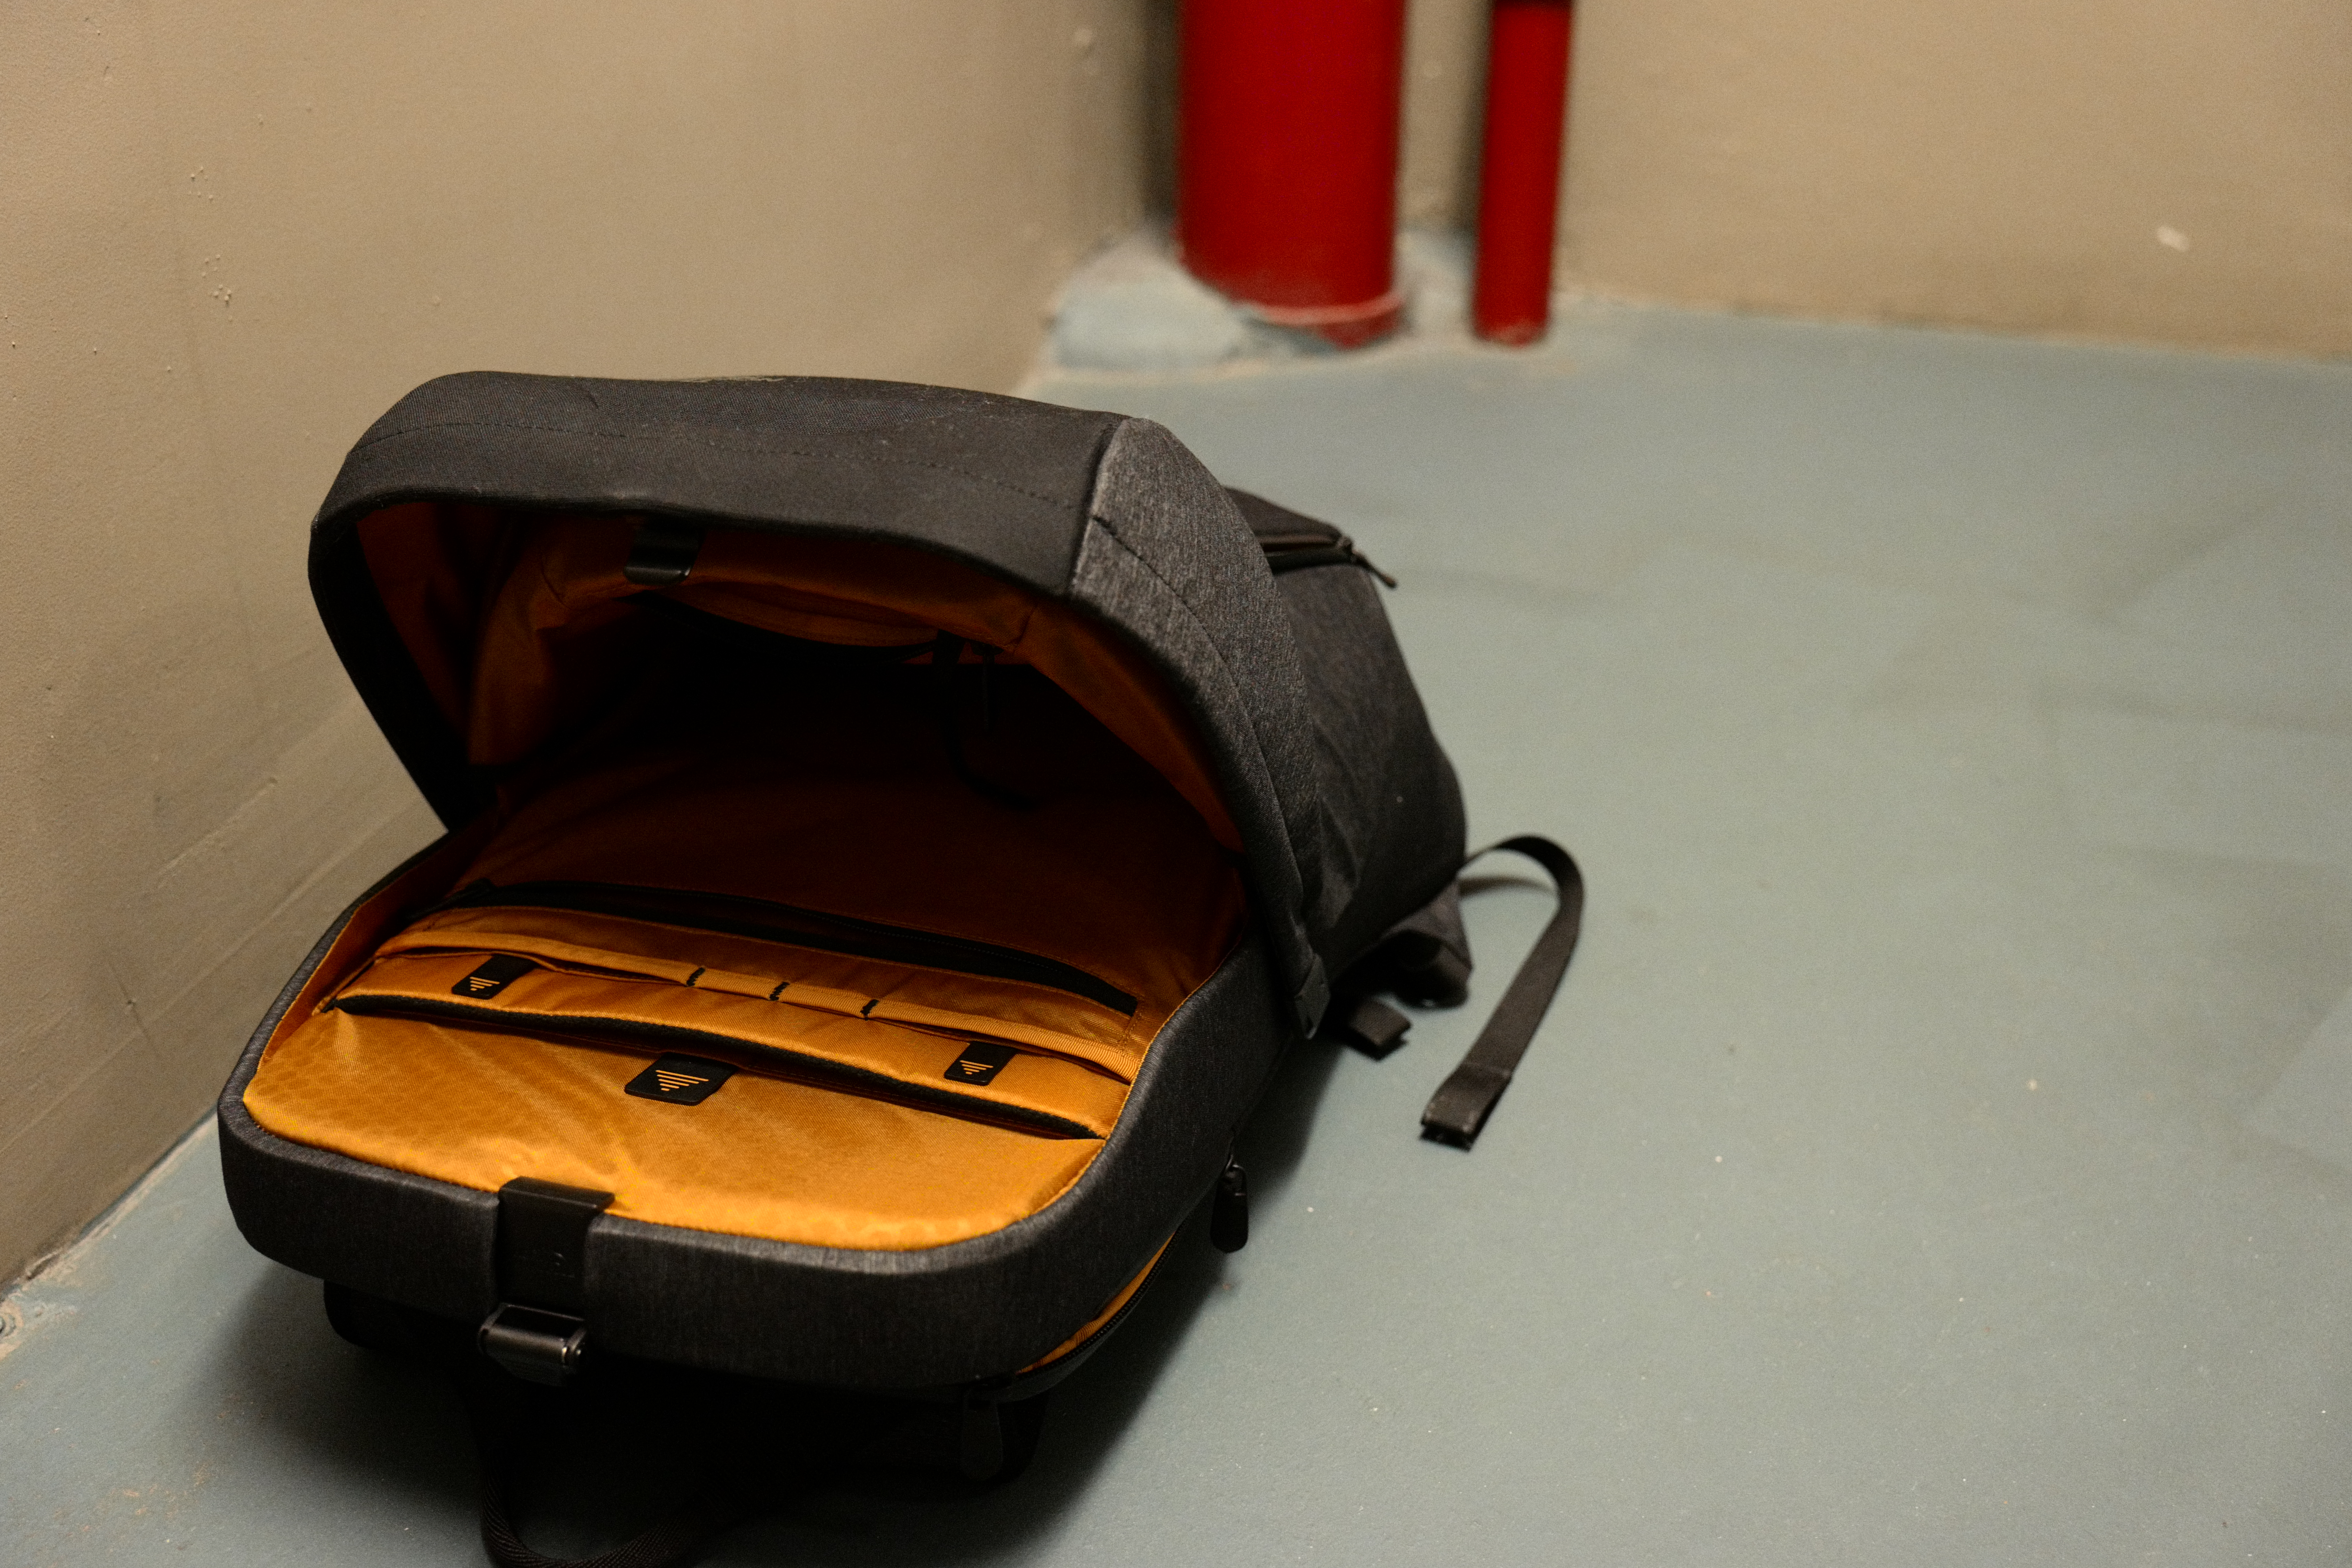 d5b1a58ed Review: The North Face's Access Pack is a backpack design that ...